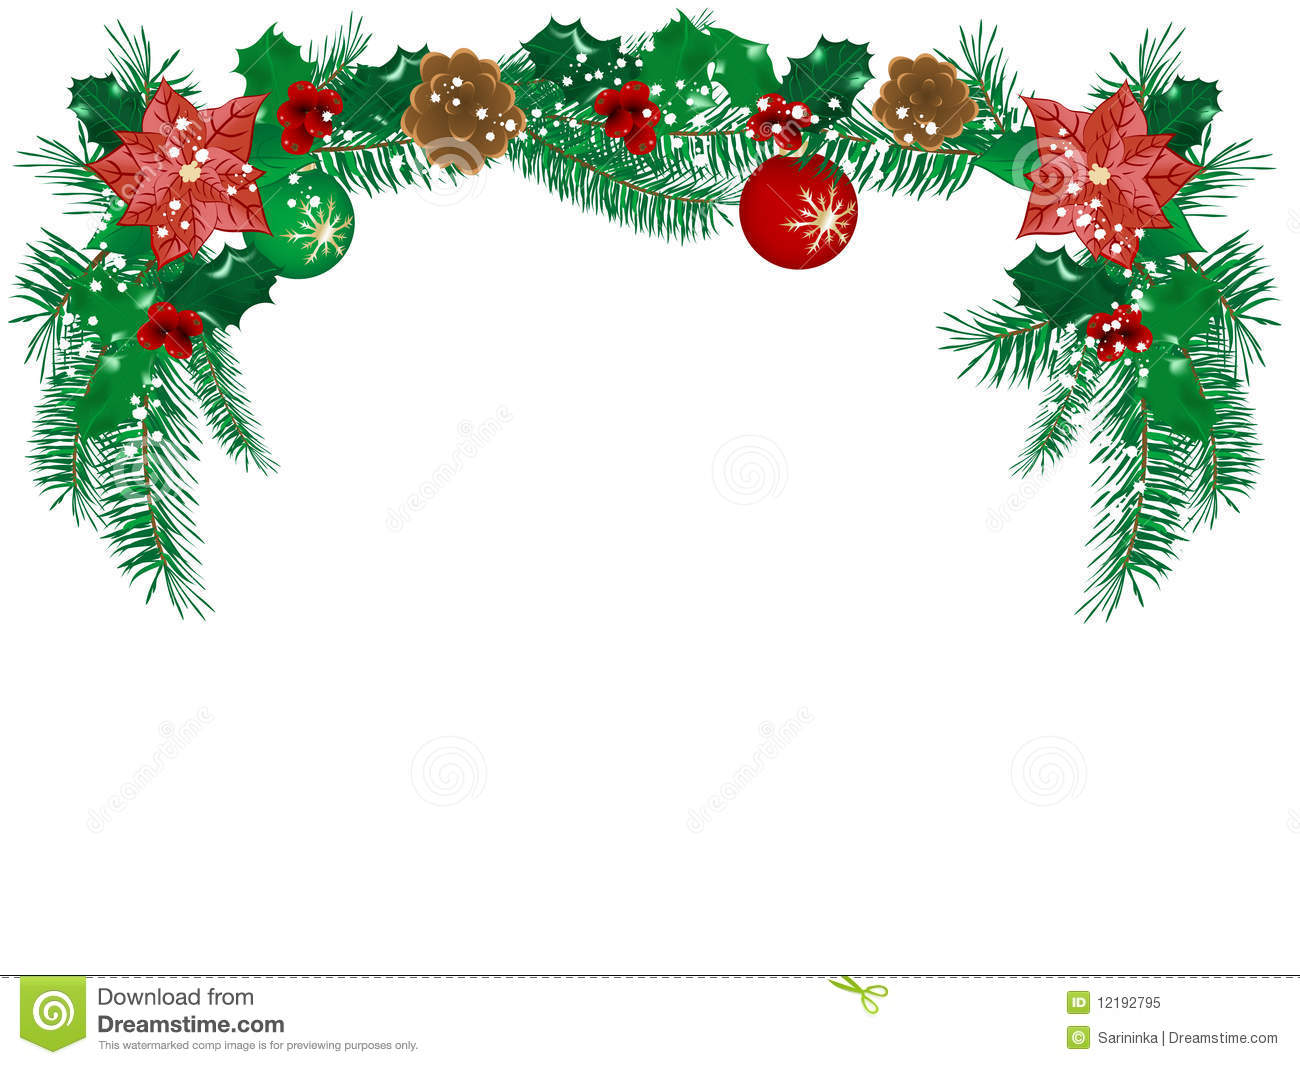 Christmas floral border stock photos freeimages com - Royalty Free Stock Photo Download Christmas Flower